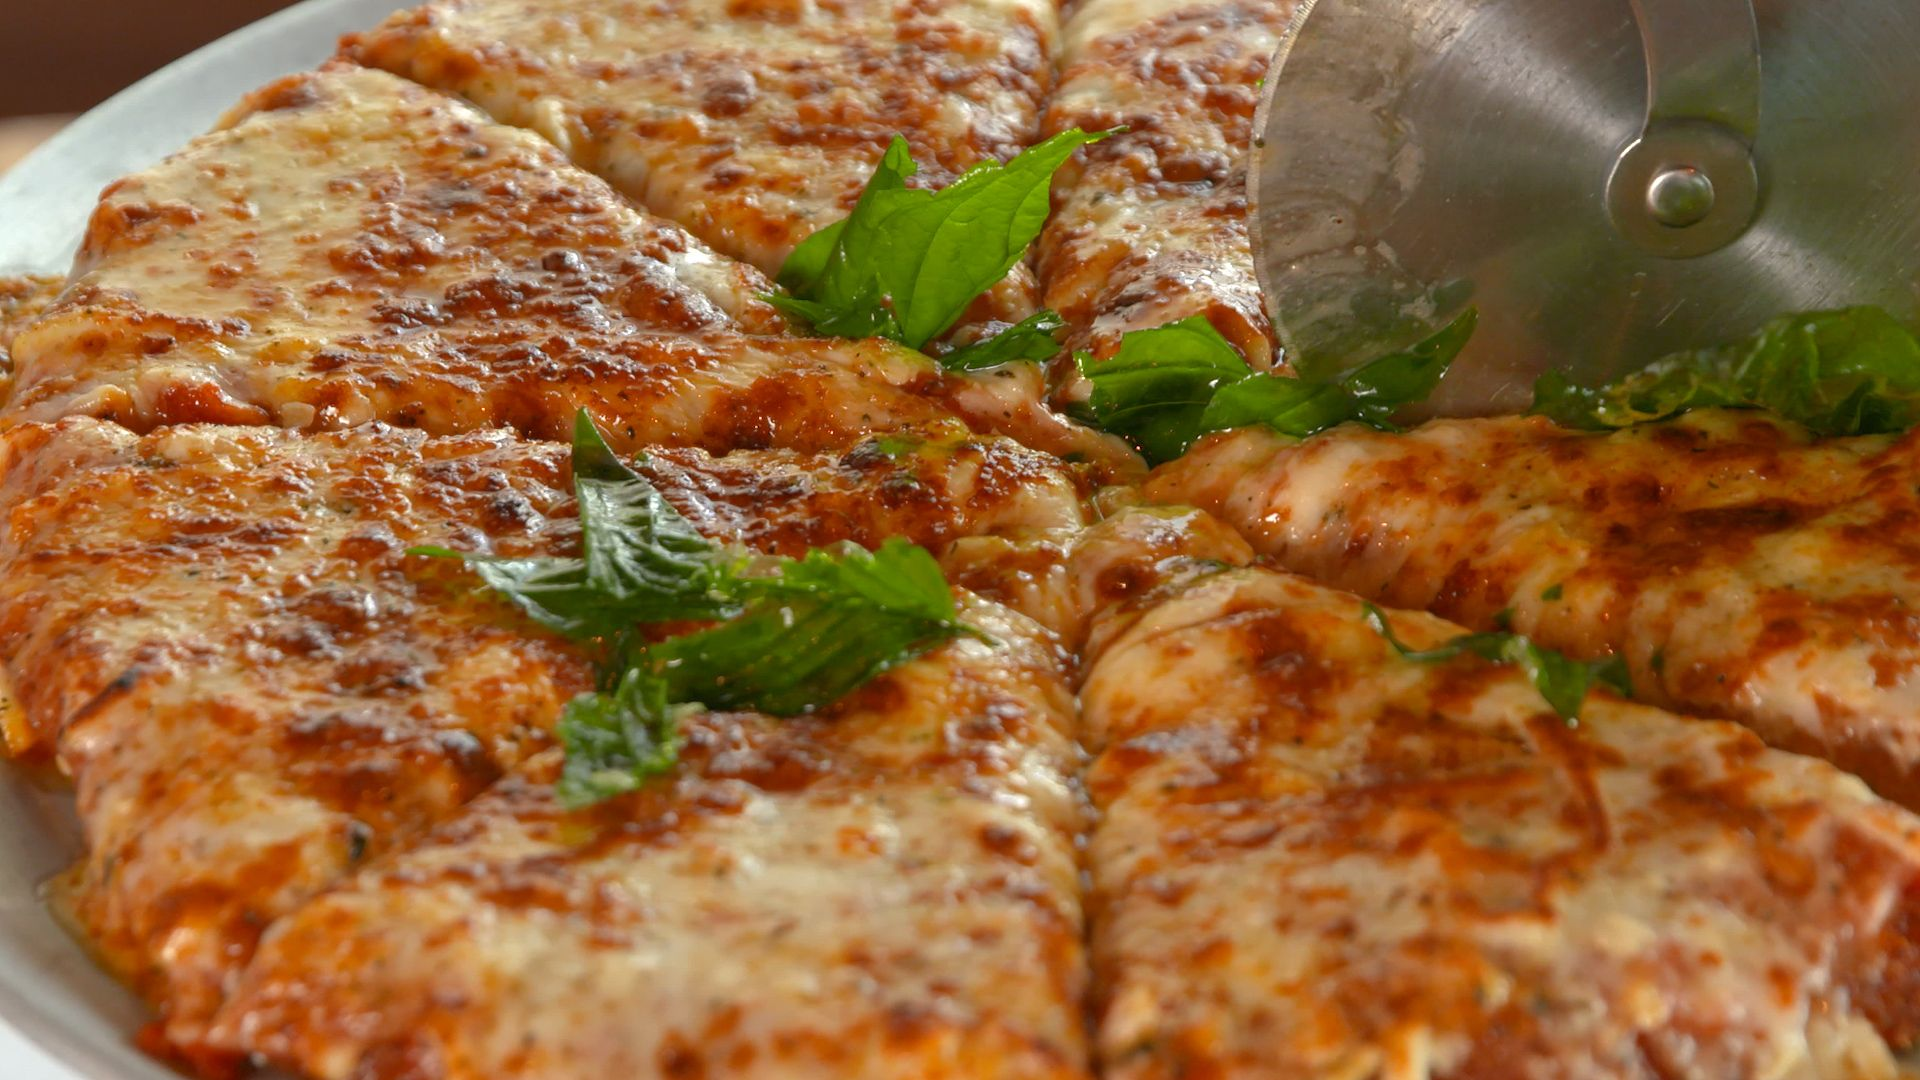 Quality Italian S Pizza Crust Is Actually Made From Fried Chicken